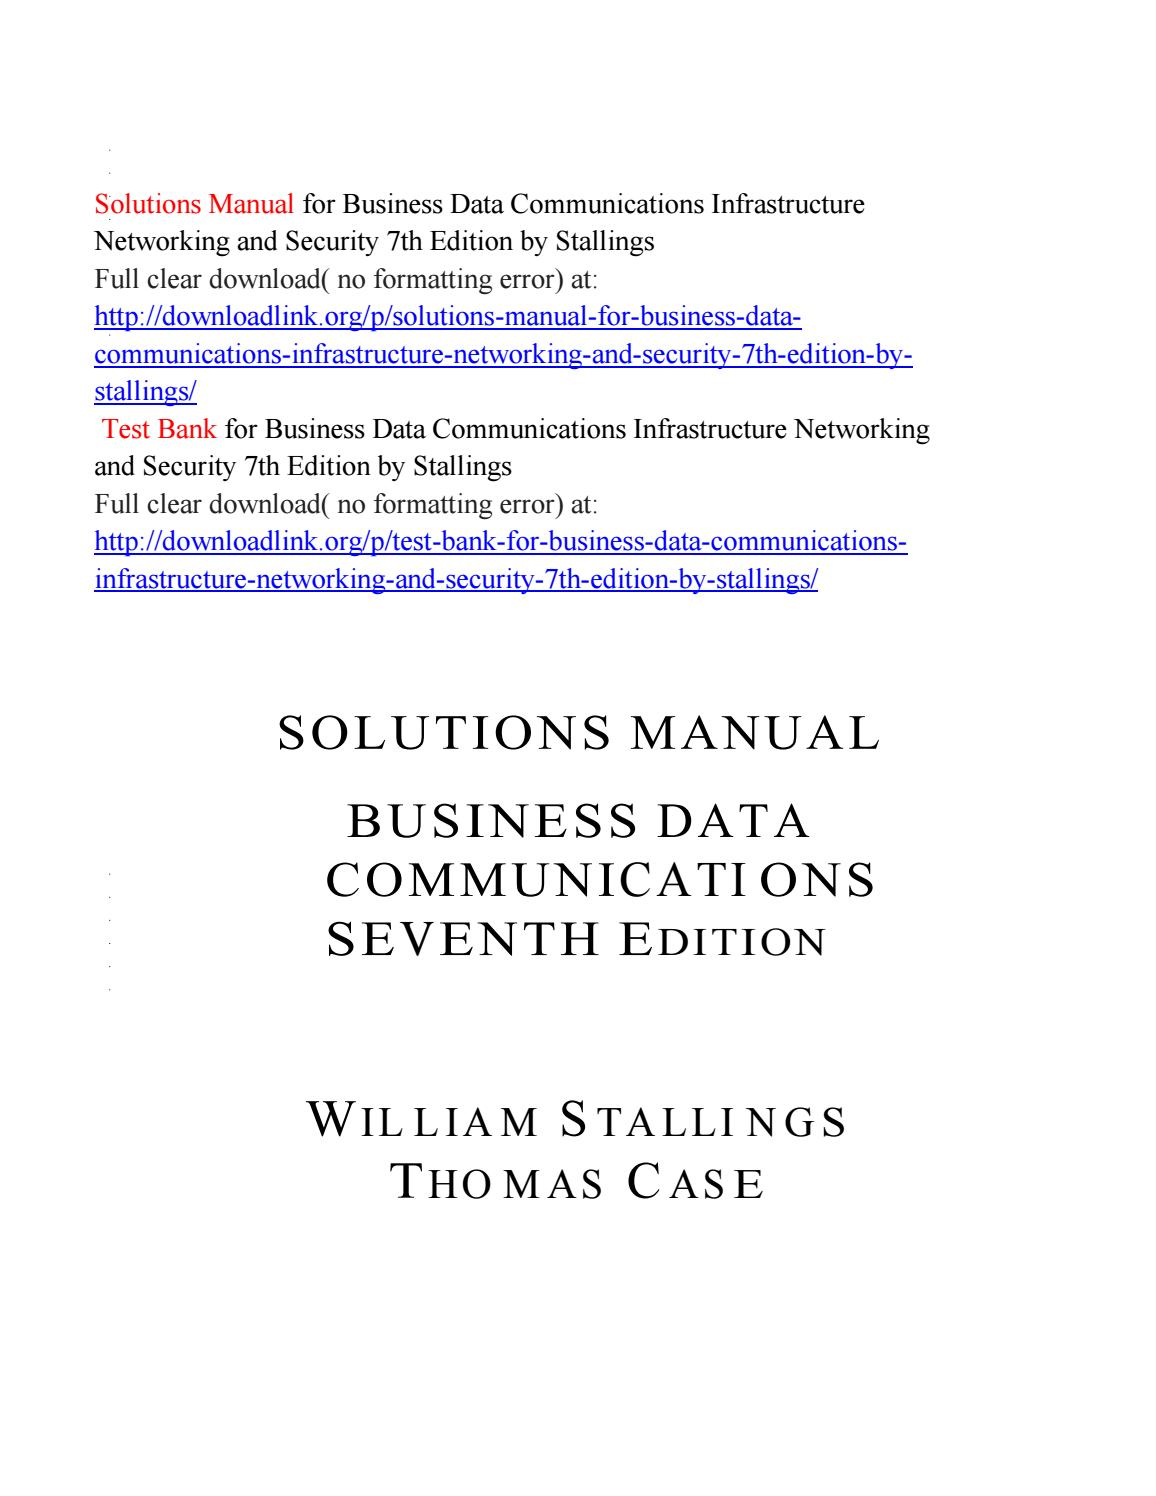 Solutions Manual For Business Data Communications Infrastructure Networking And Security 7th Edition By Mann9654 Issuu